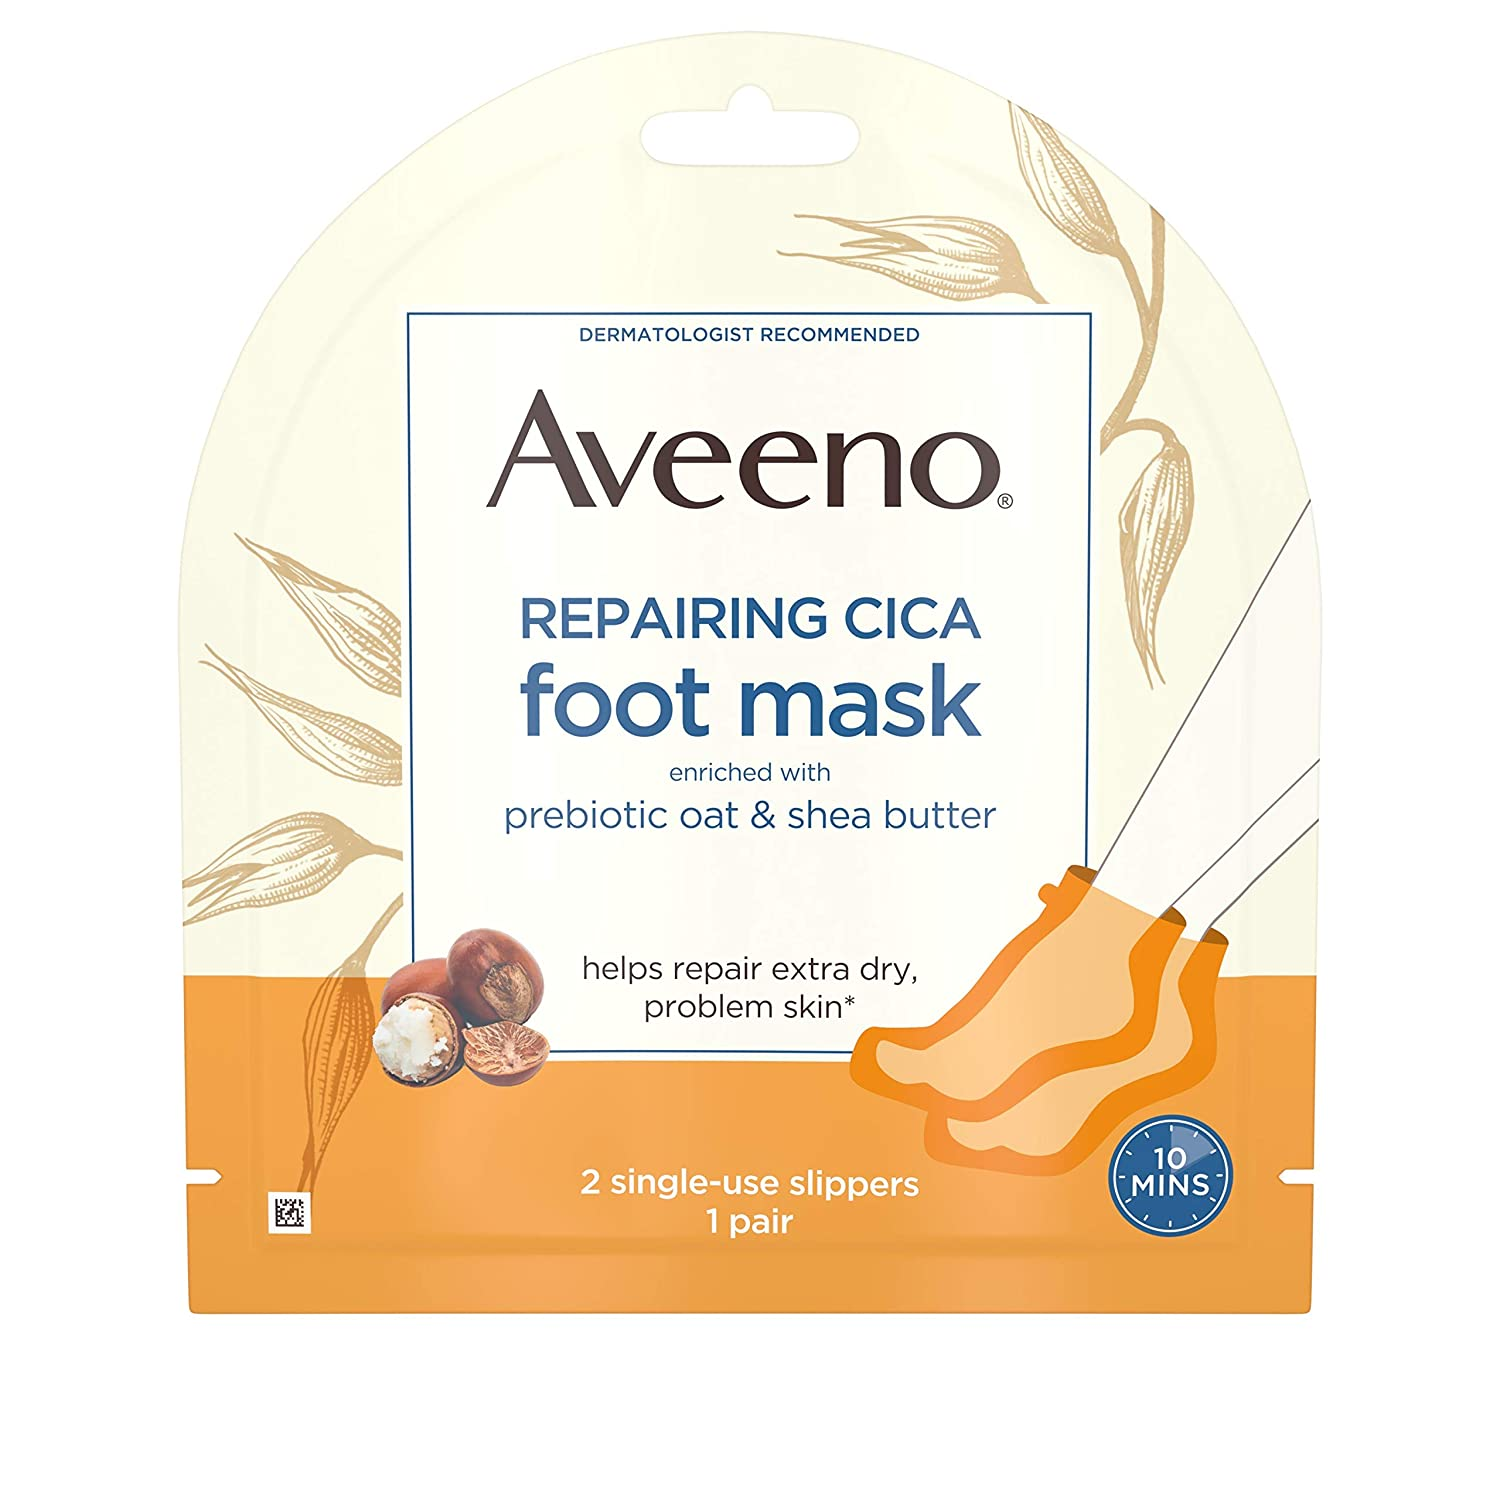 Aveeno Repairing CICA Foot Mask with Prebiotic Oat and Shea Butter, Moisturizing Foot Mask for Extra Dry Skin, 1 Pair of Single-Use Slippers (Pack of 36)